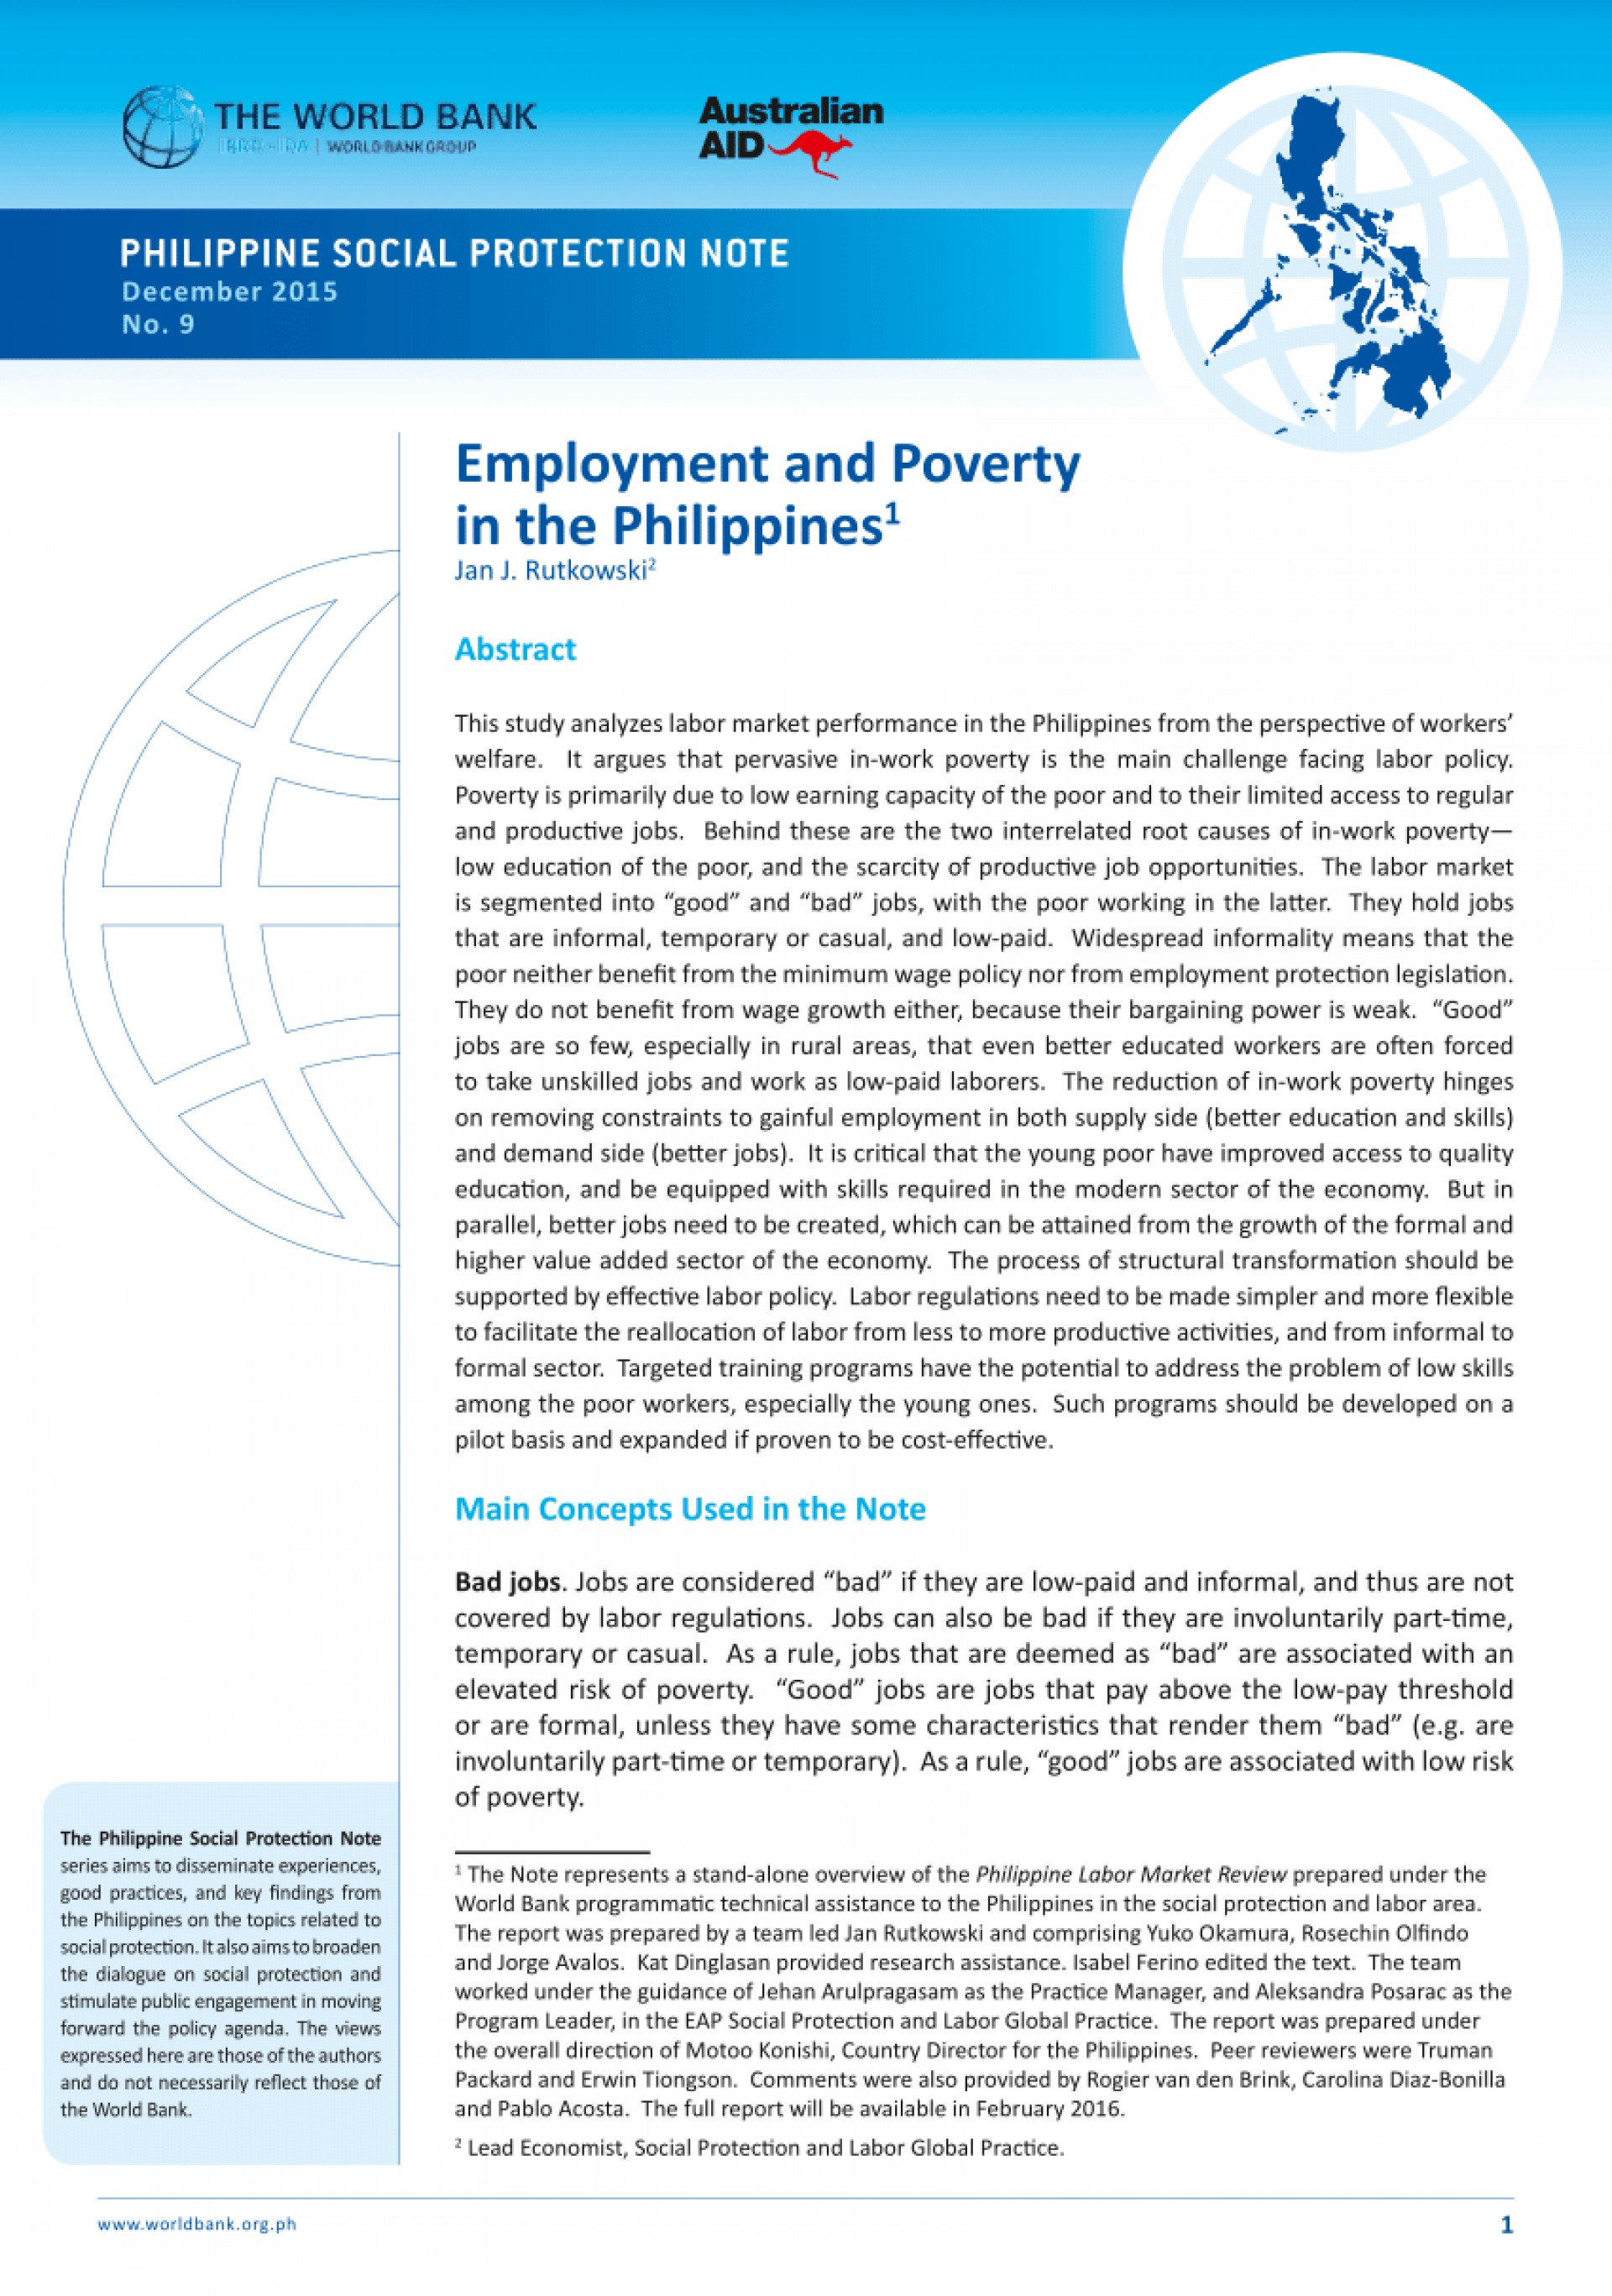 006 Research Paper Largepreview Poverty In The Philippines Impressive Pdf 1920